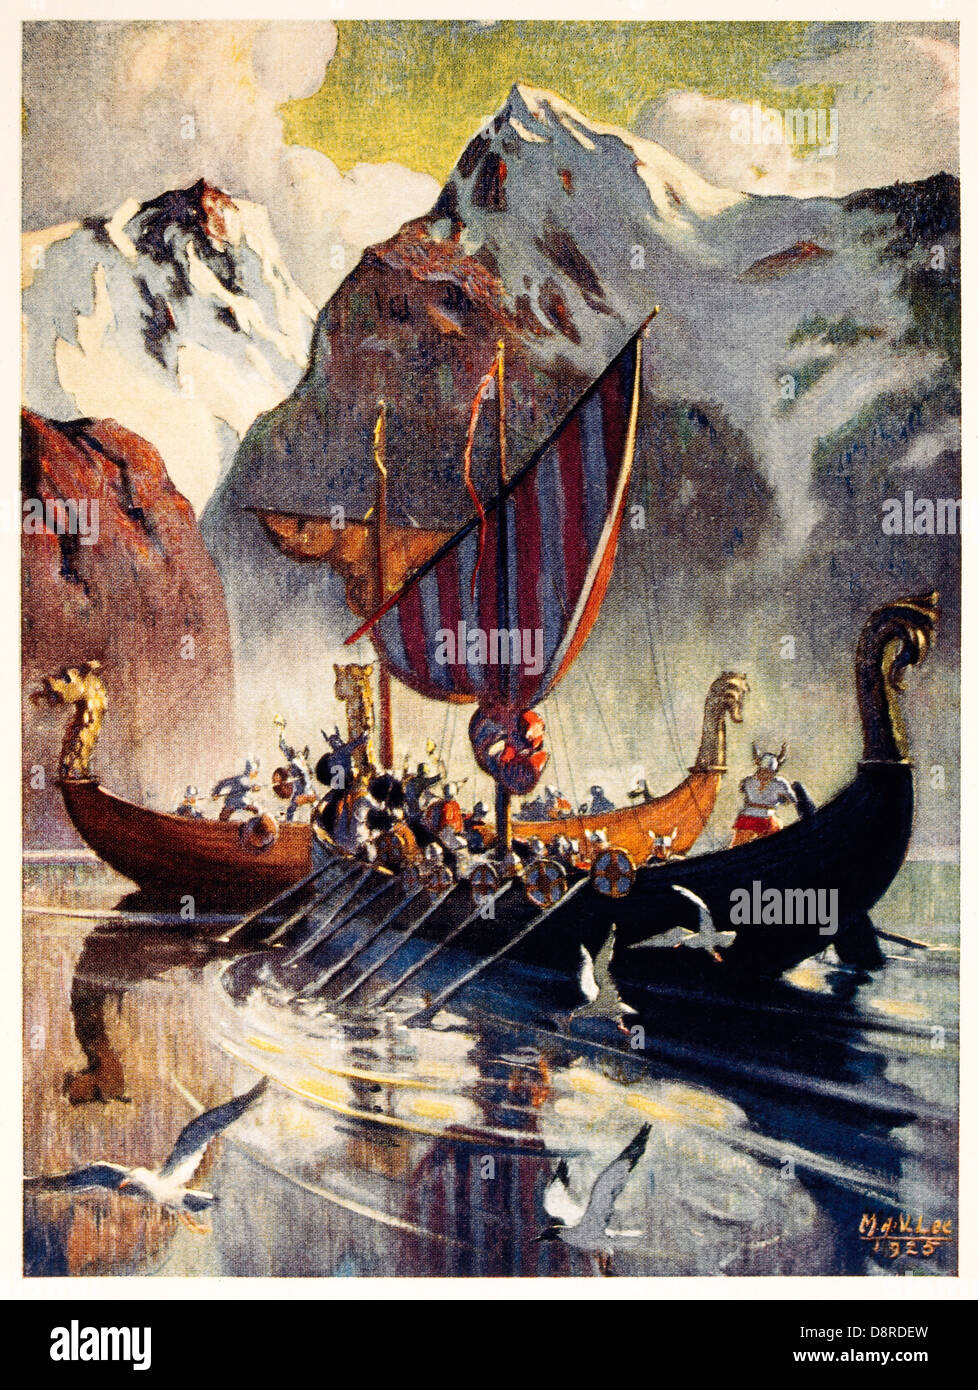 Viking Ship in Fjord, Lithograph, 1925 after Painting by Manning de V. Lee - Stock Image